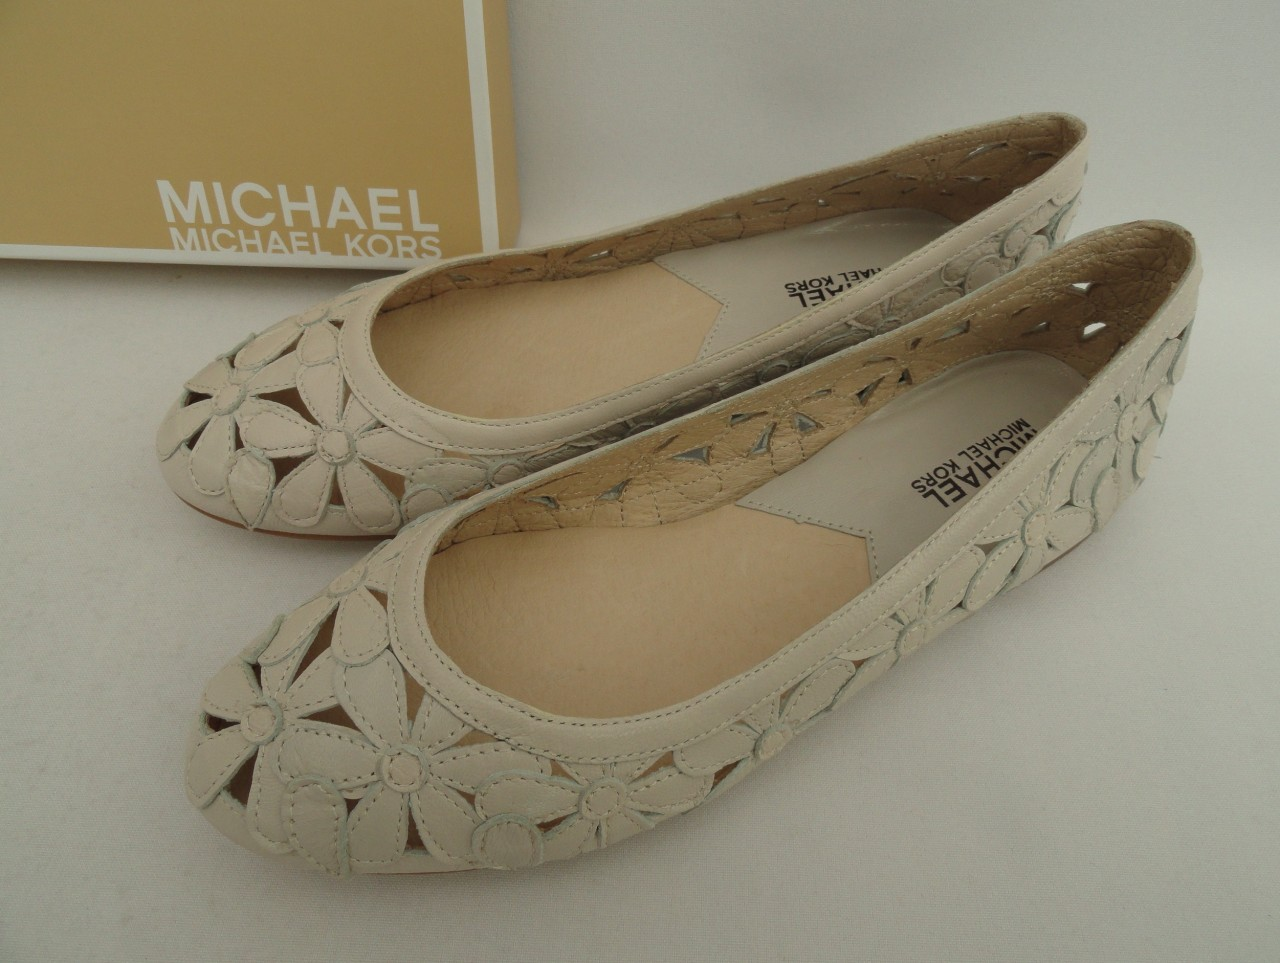 BN-Michael-Kors-White-Daisy-Leather-Flats-Shoes-UK4-6-7-EU37-39-40